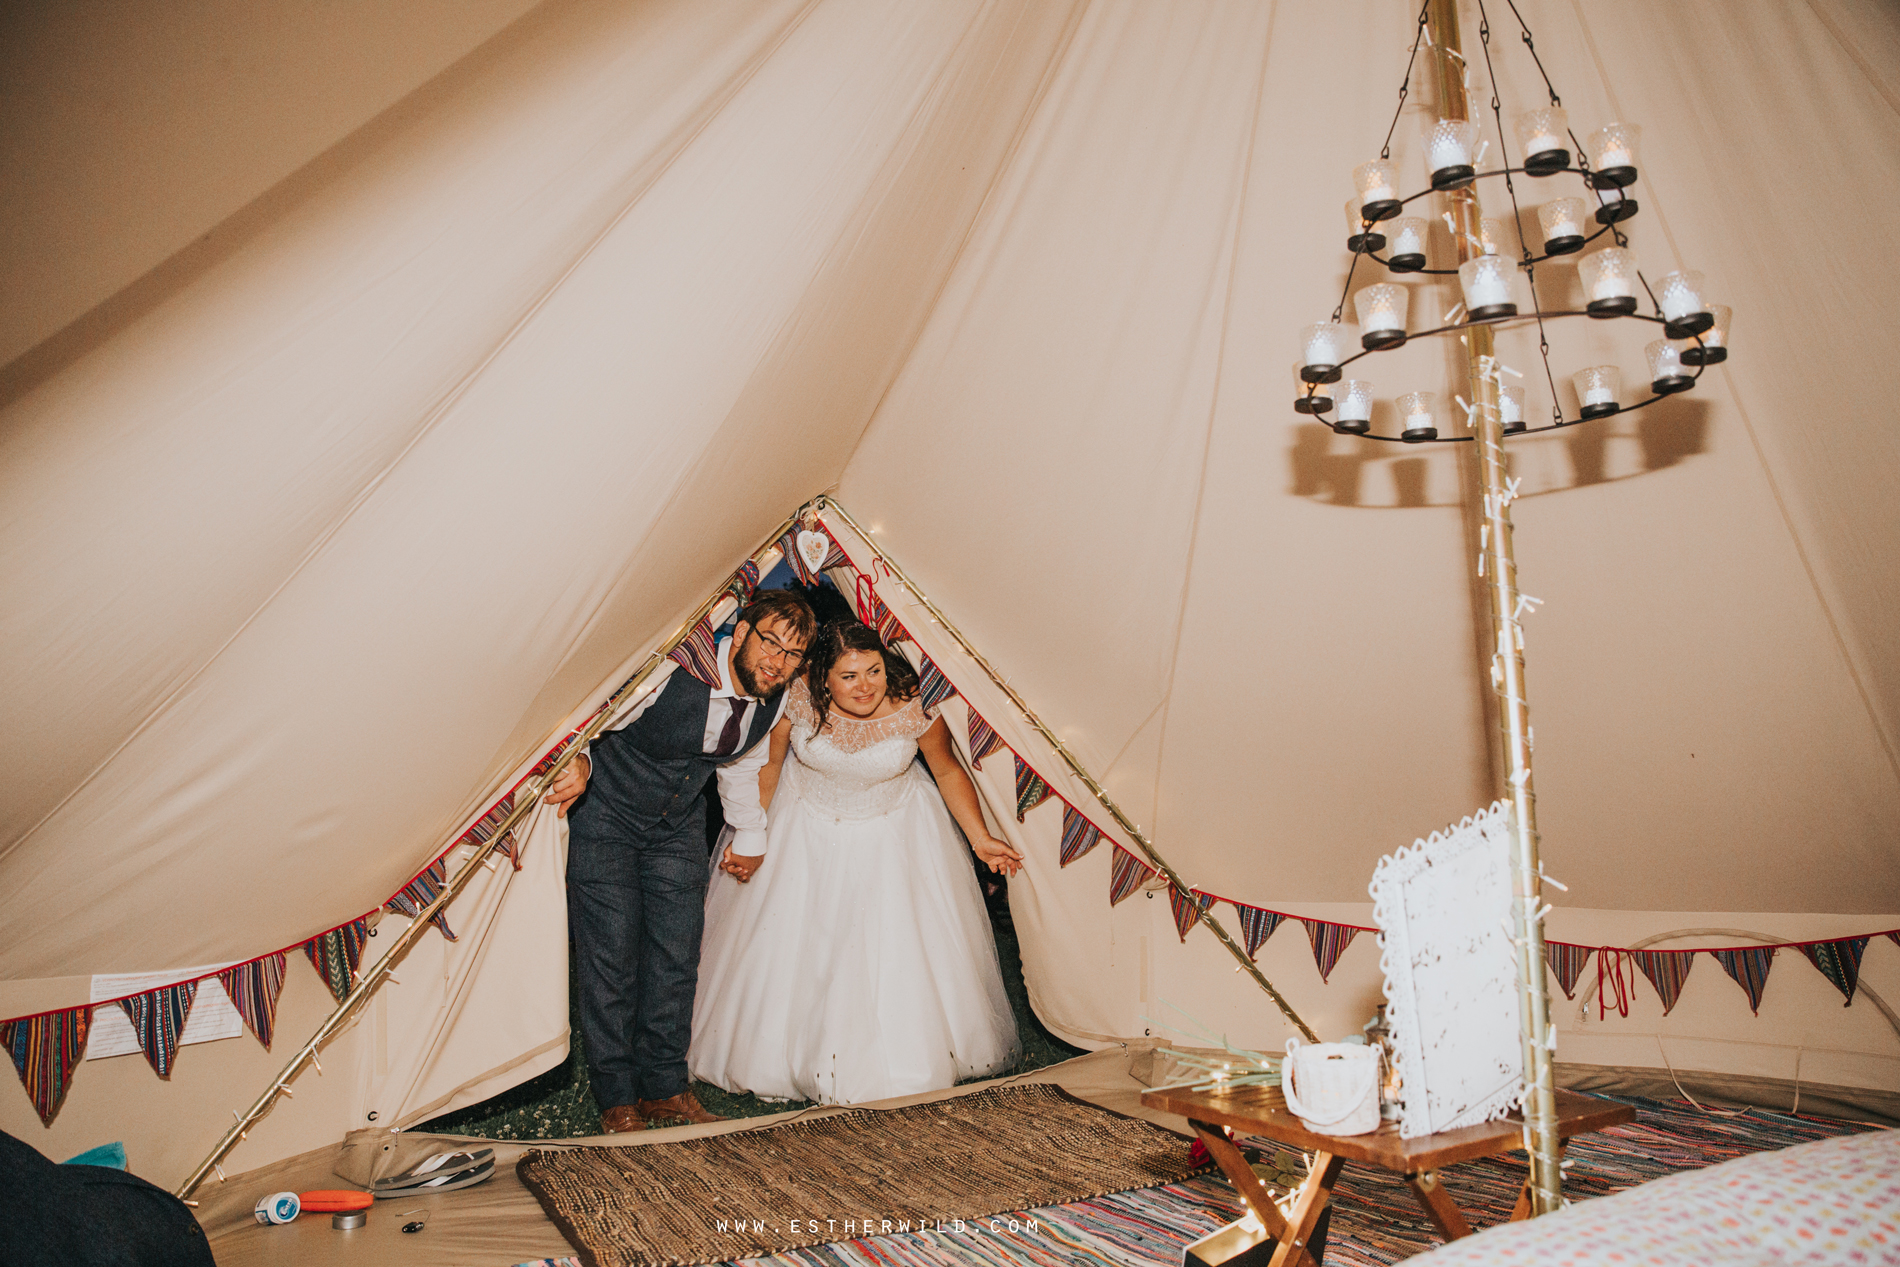 The_Red_Barn_Wedding_Kings_Lynn_Norfolk_IMG_3193.jpg